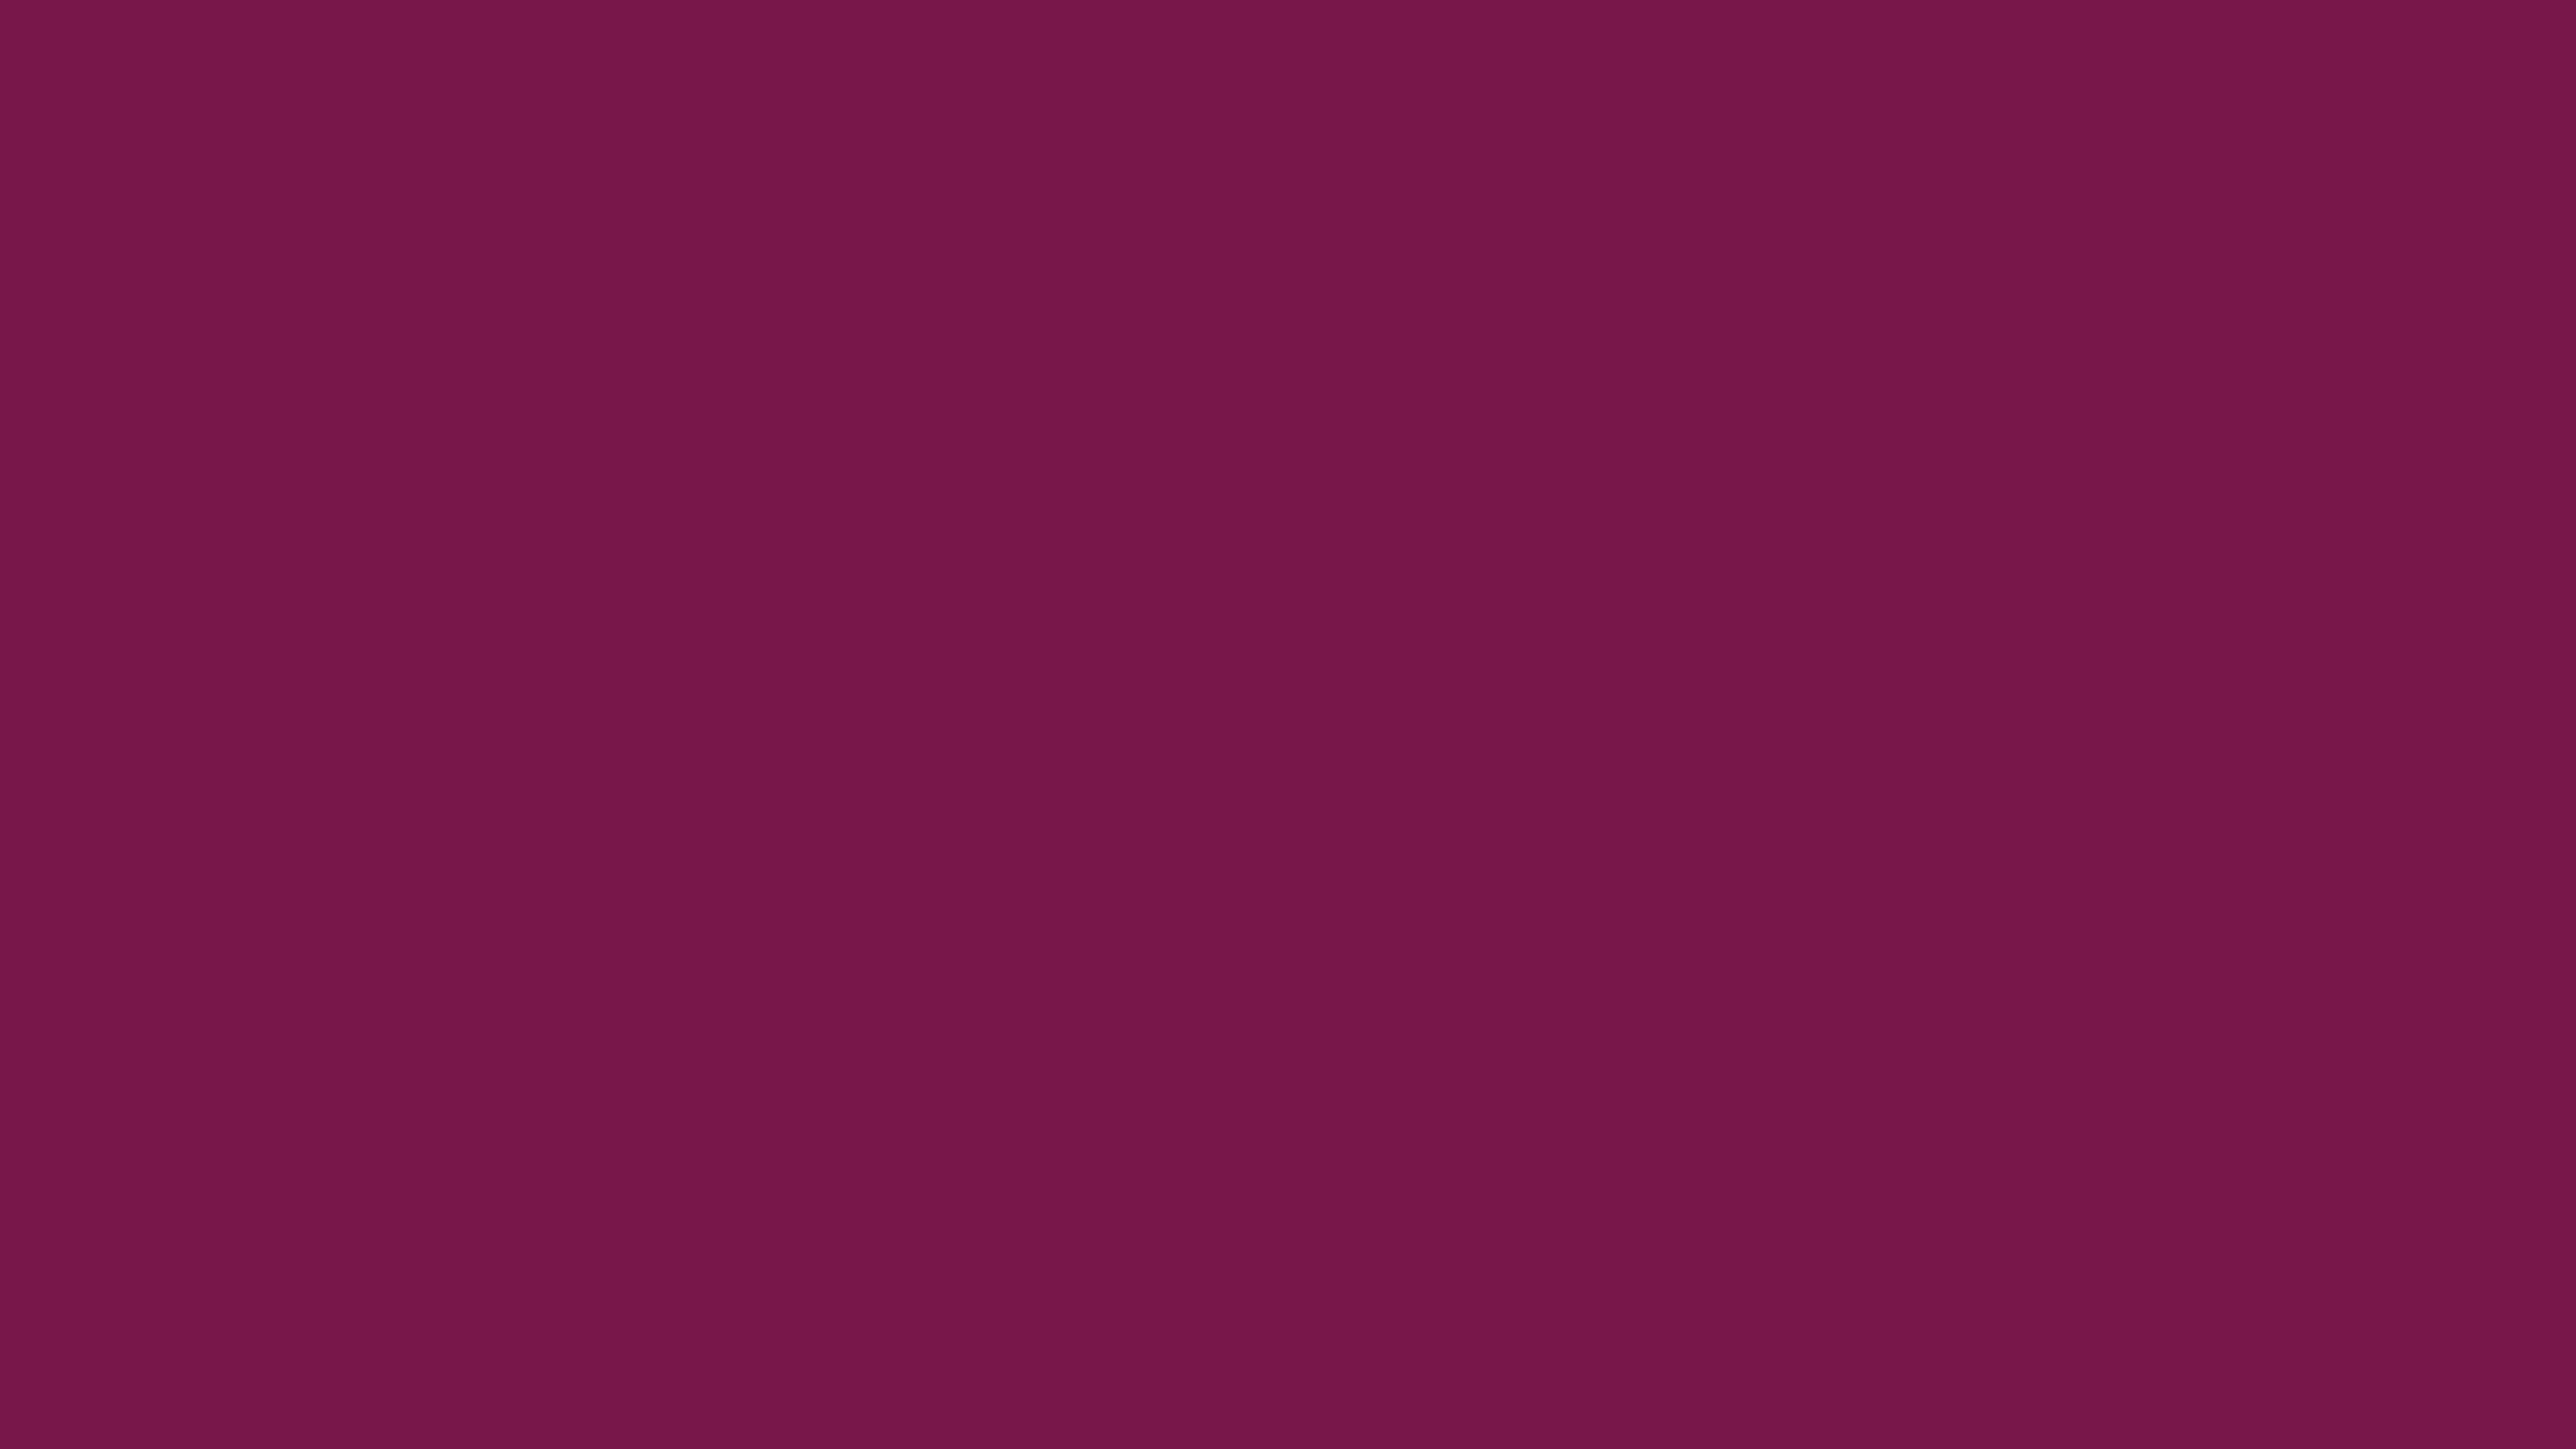 5120x2880 Pansy Purple Solid Color Background